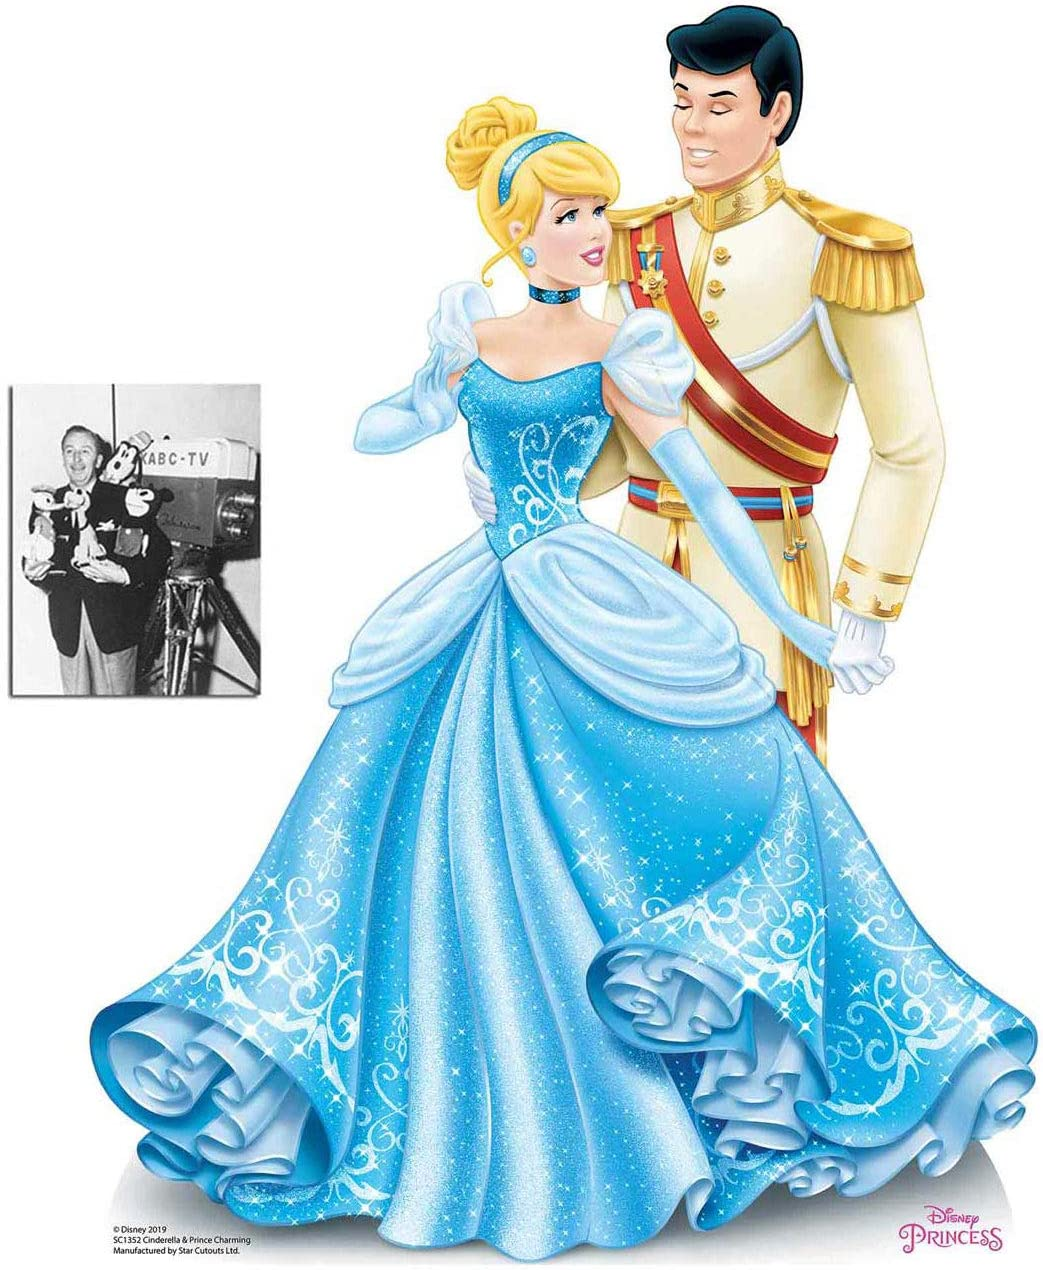 Amazon Com Official Princess Cinderella And Prince Charming Mini Cardboard Cutout Standup 79cm X 60cm And 8x10 Photo Home Kitchen